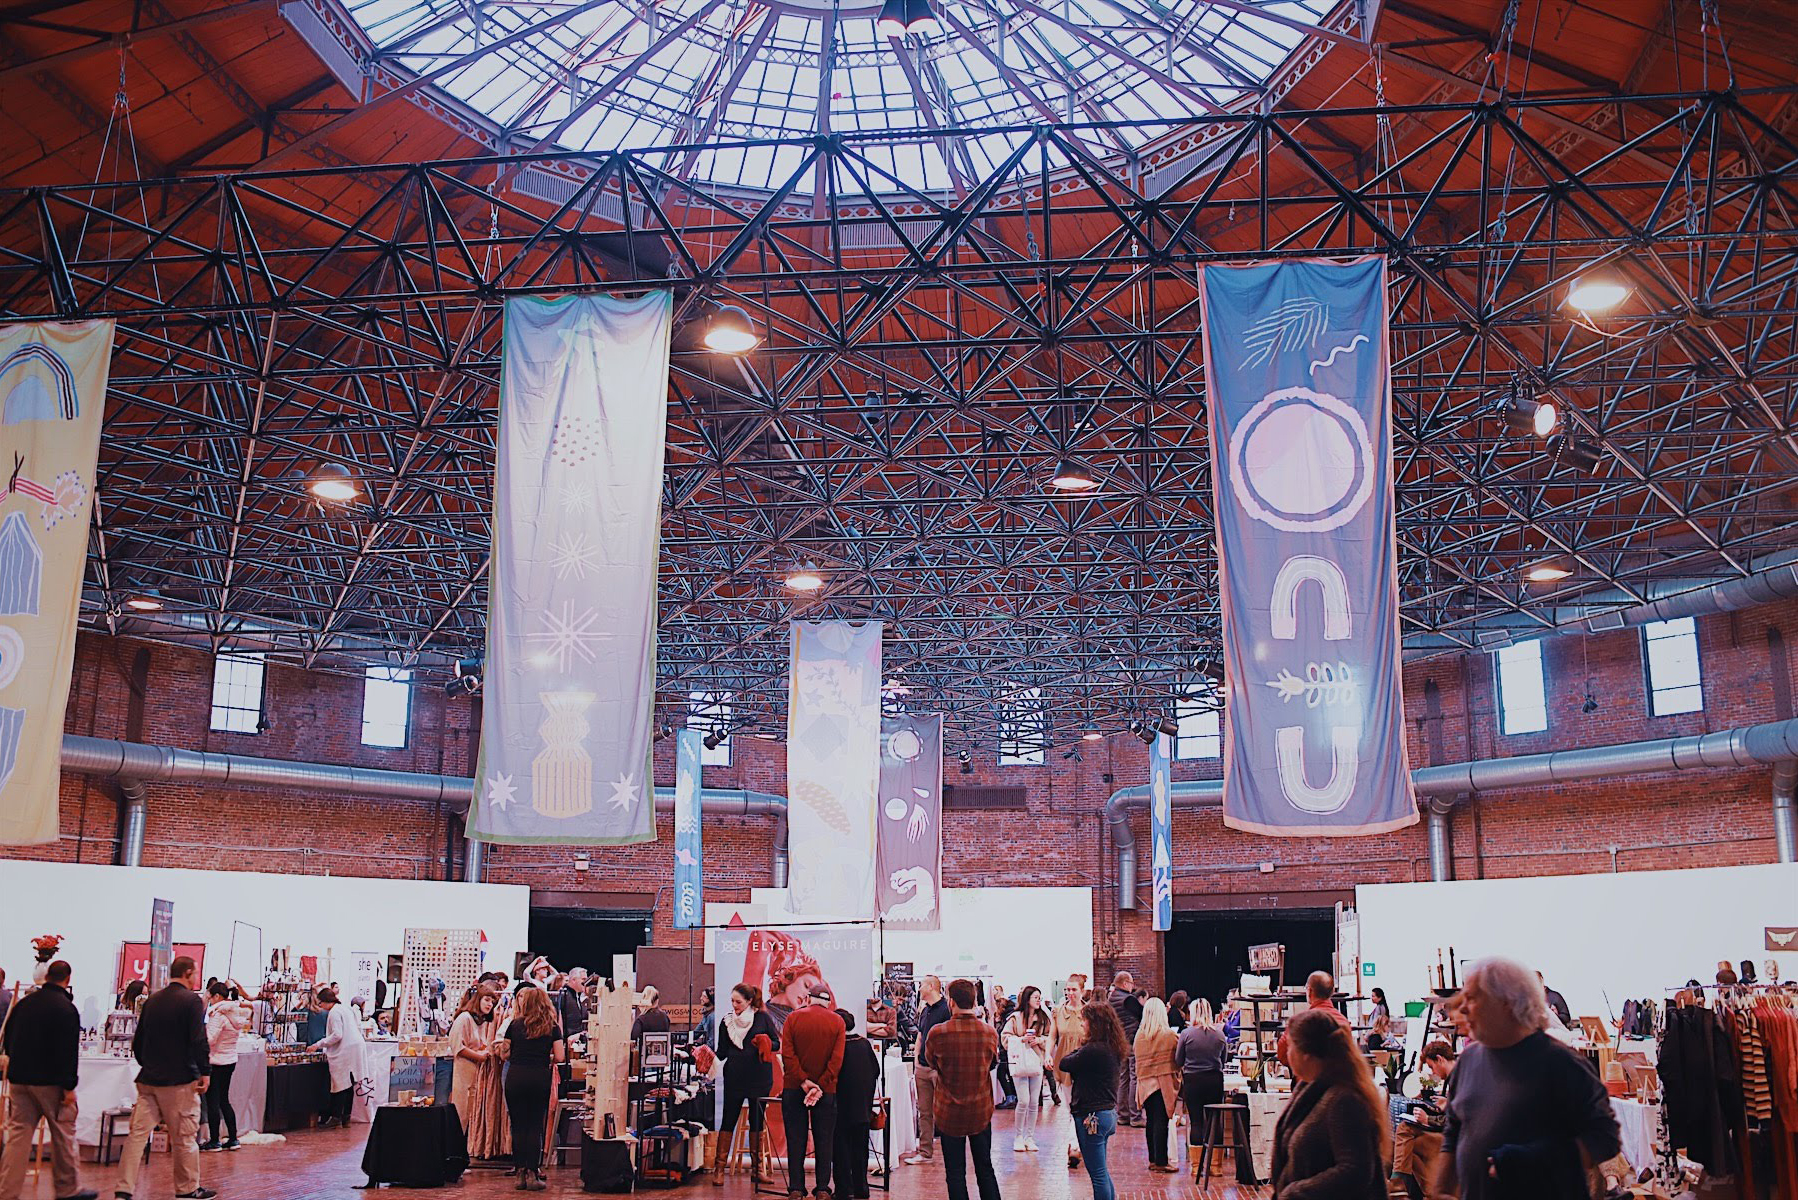 The annual Renegade Craft Fair